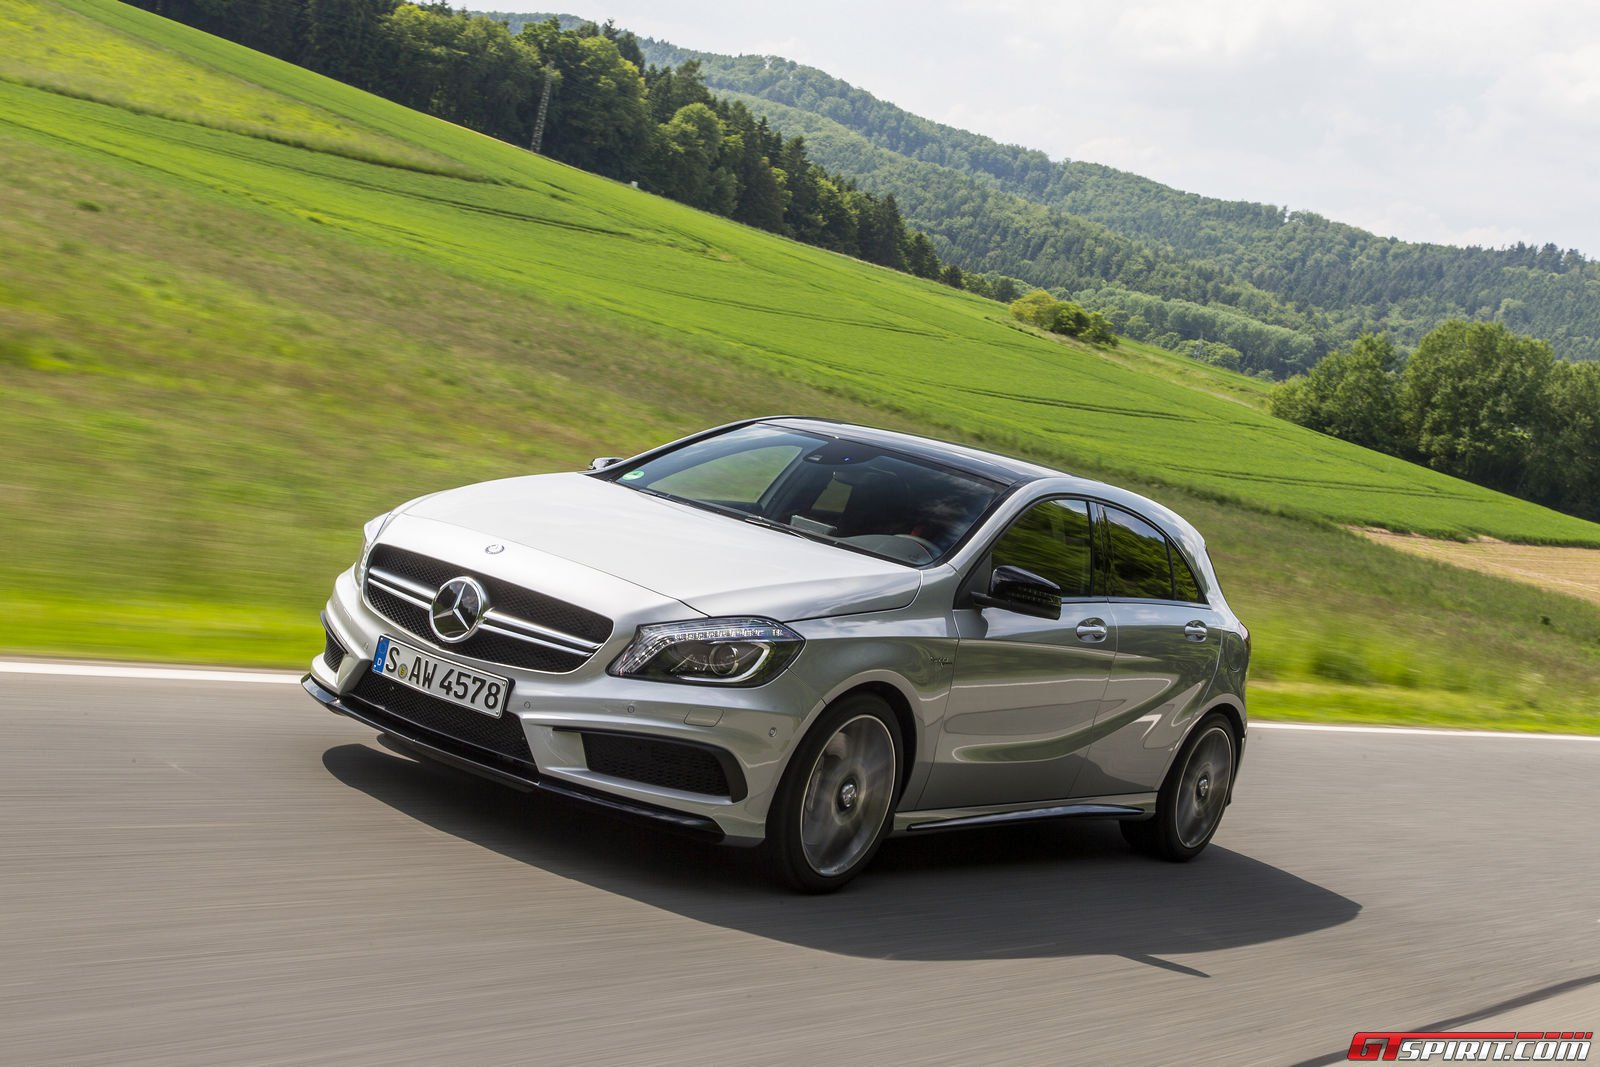 Road test 2014 mercedes benz a45 amg gtspirit for Mercedes benz a45 amg